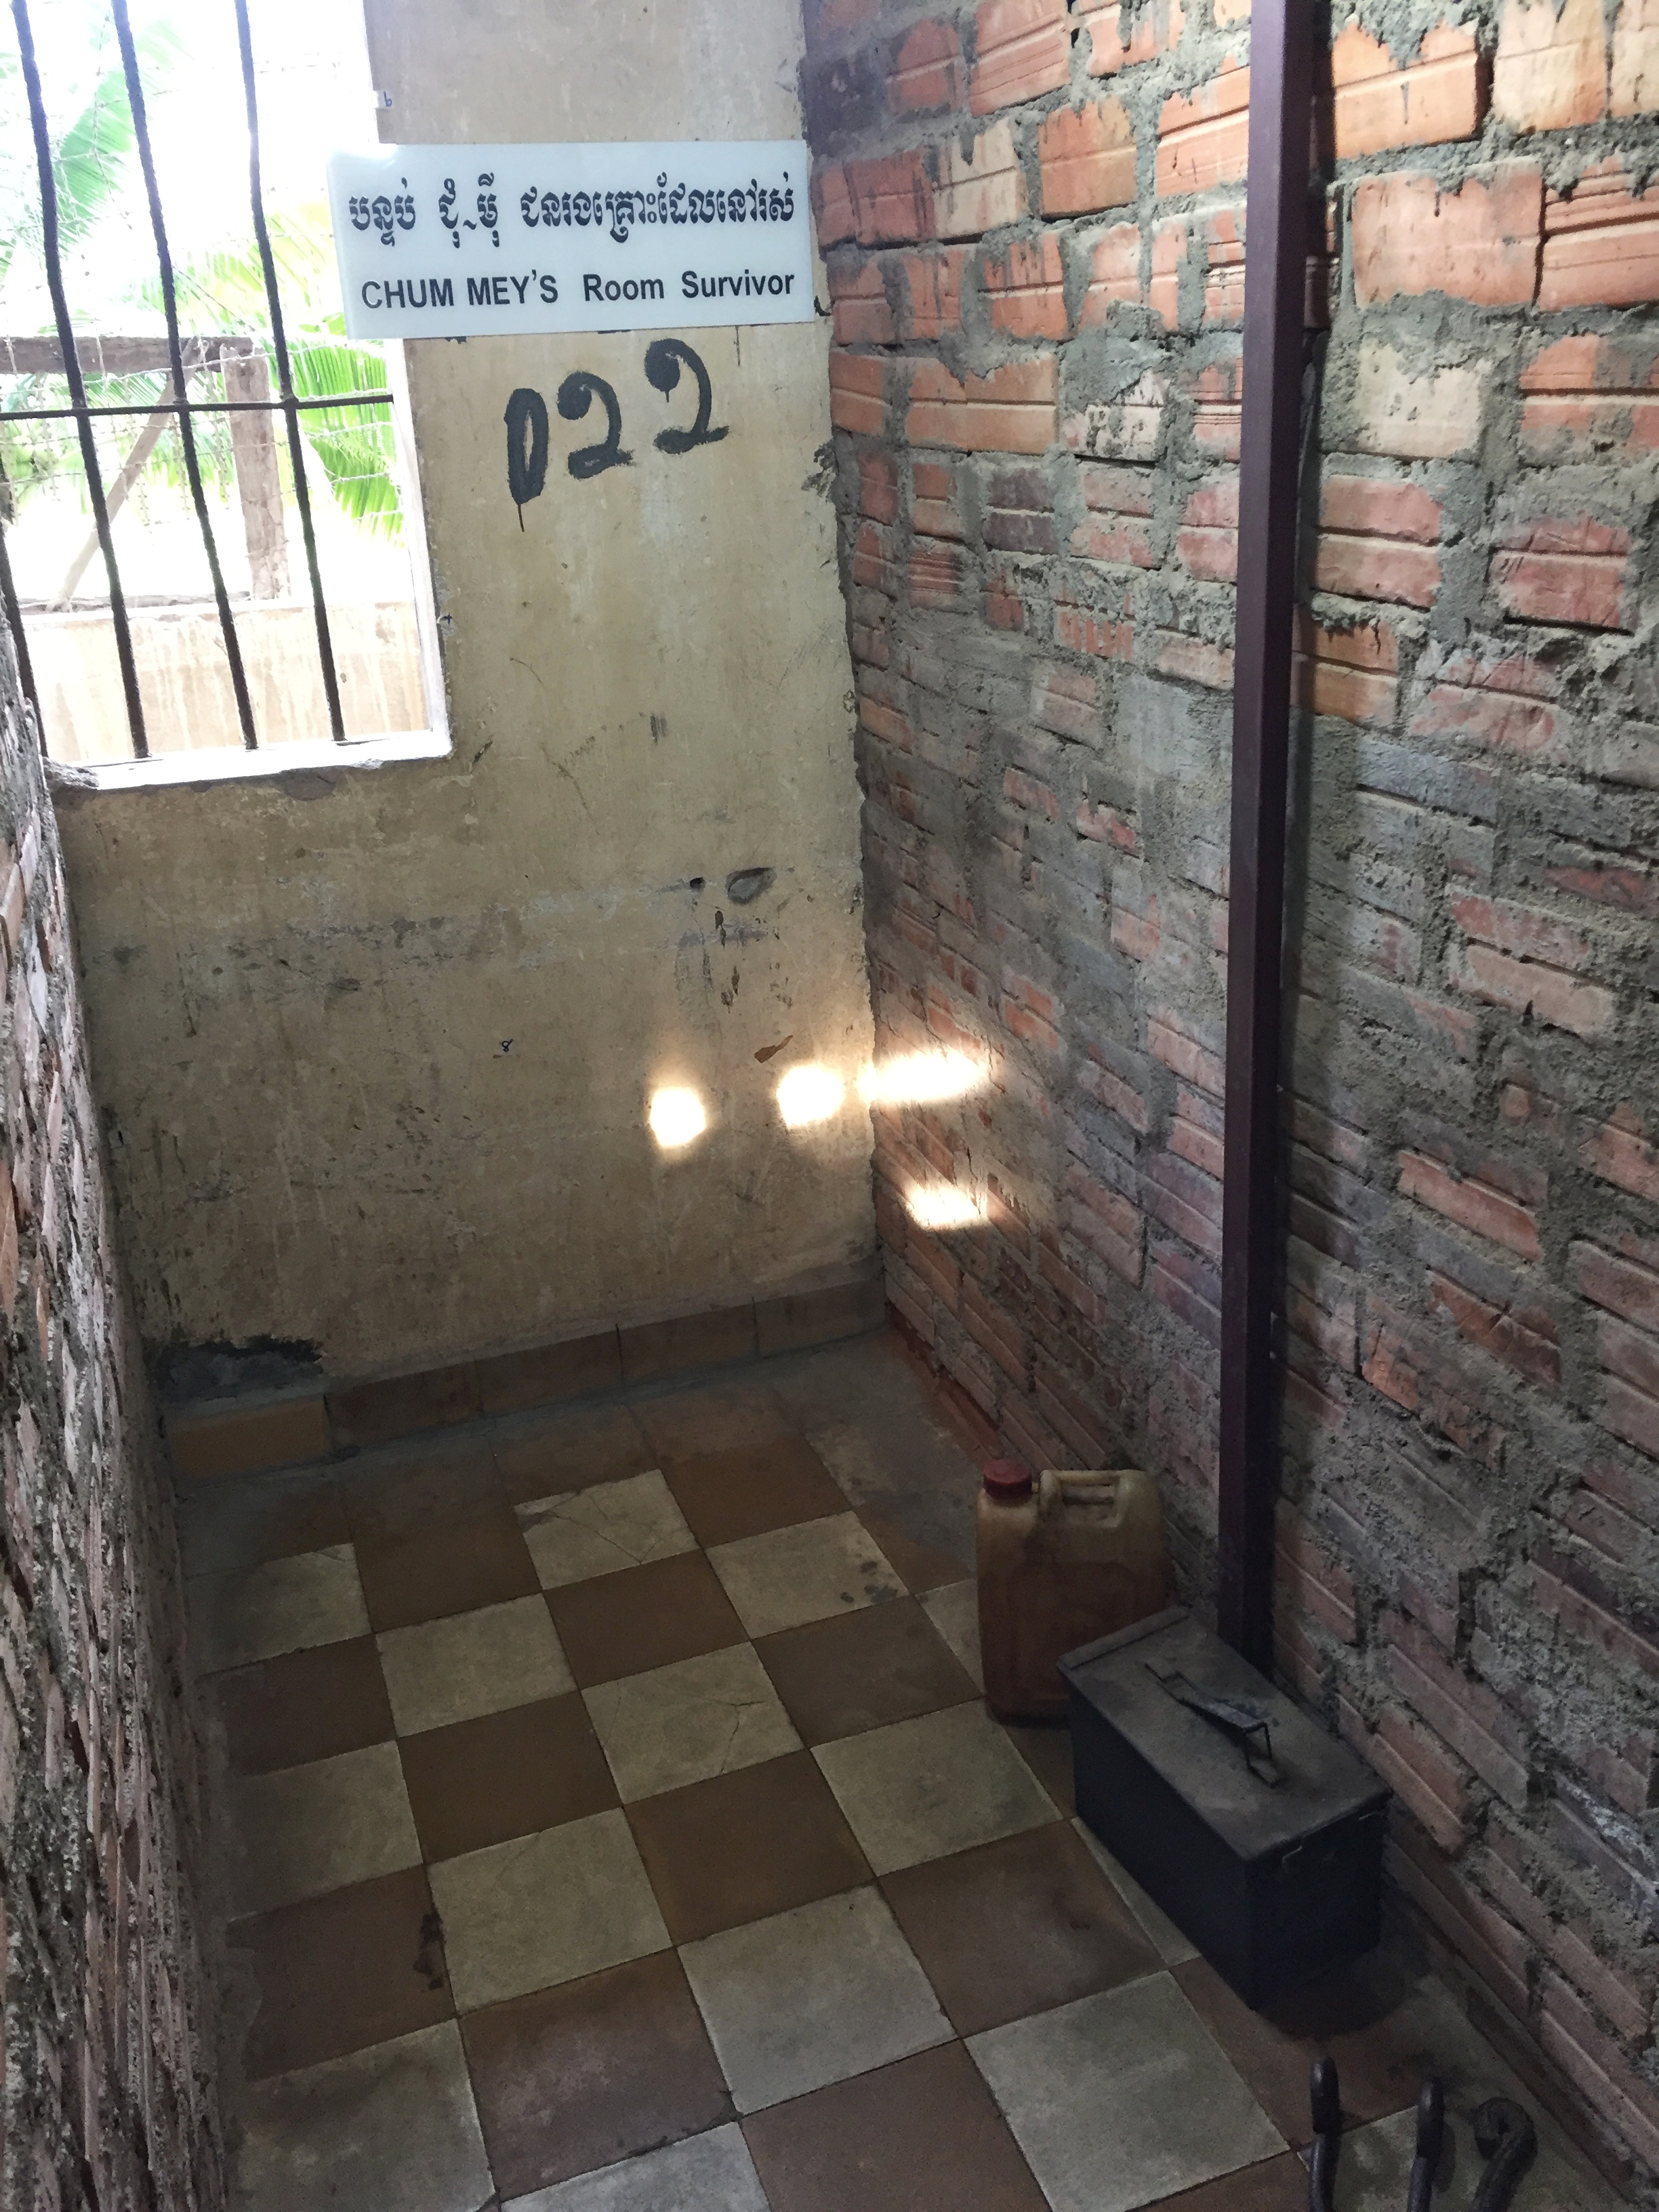 notable prisoner's cell; he and other prisoners sat on the floor with their hands and feet shackled